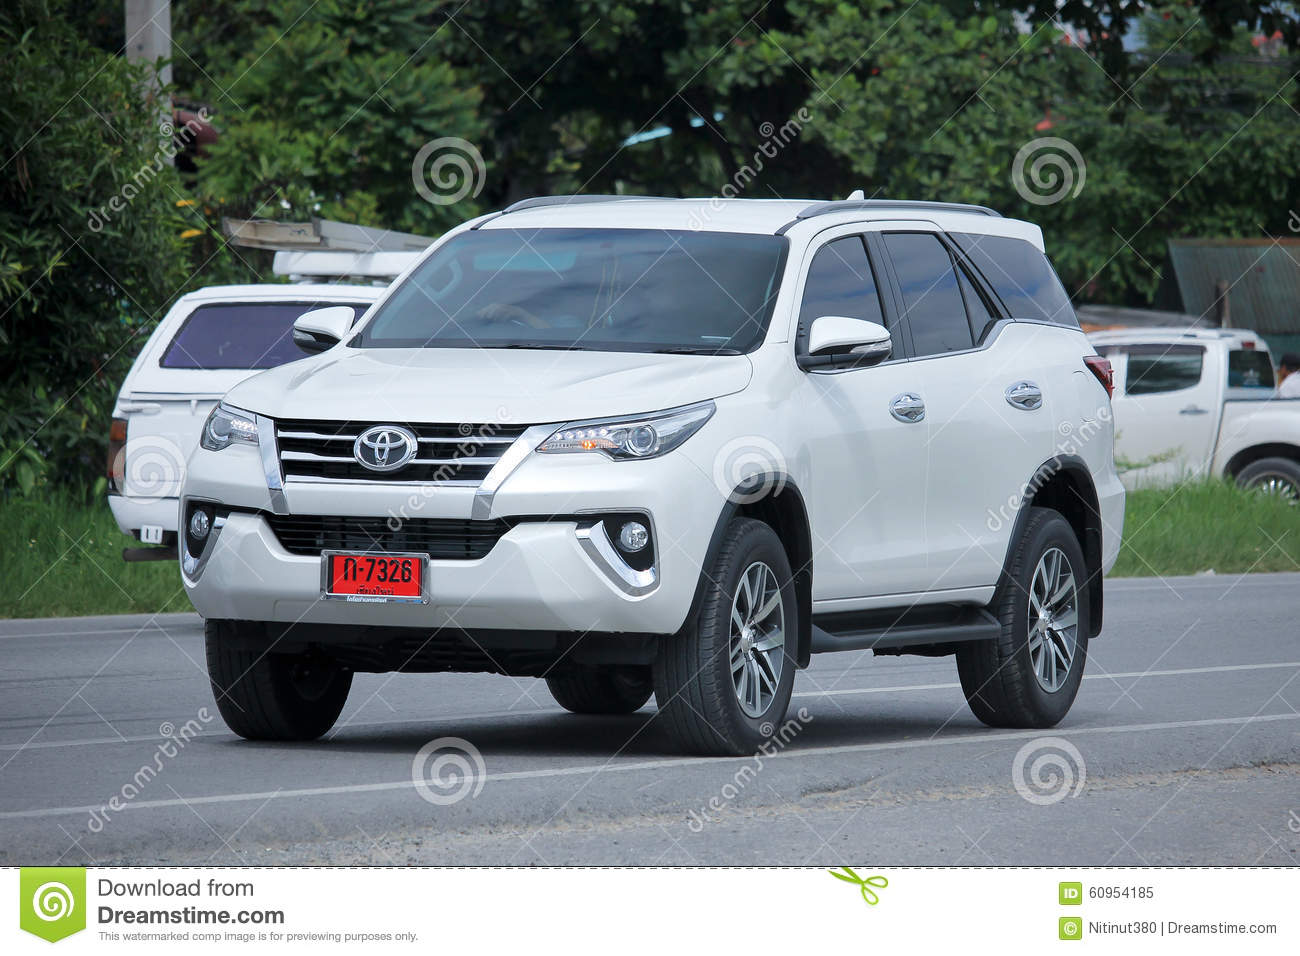 privat suv auto toyota fortuner redaktionelles bild bild 60954185. Black Bedroom Furniture Sets. Home Design Ideas